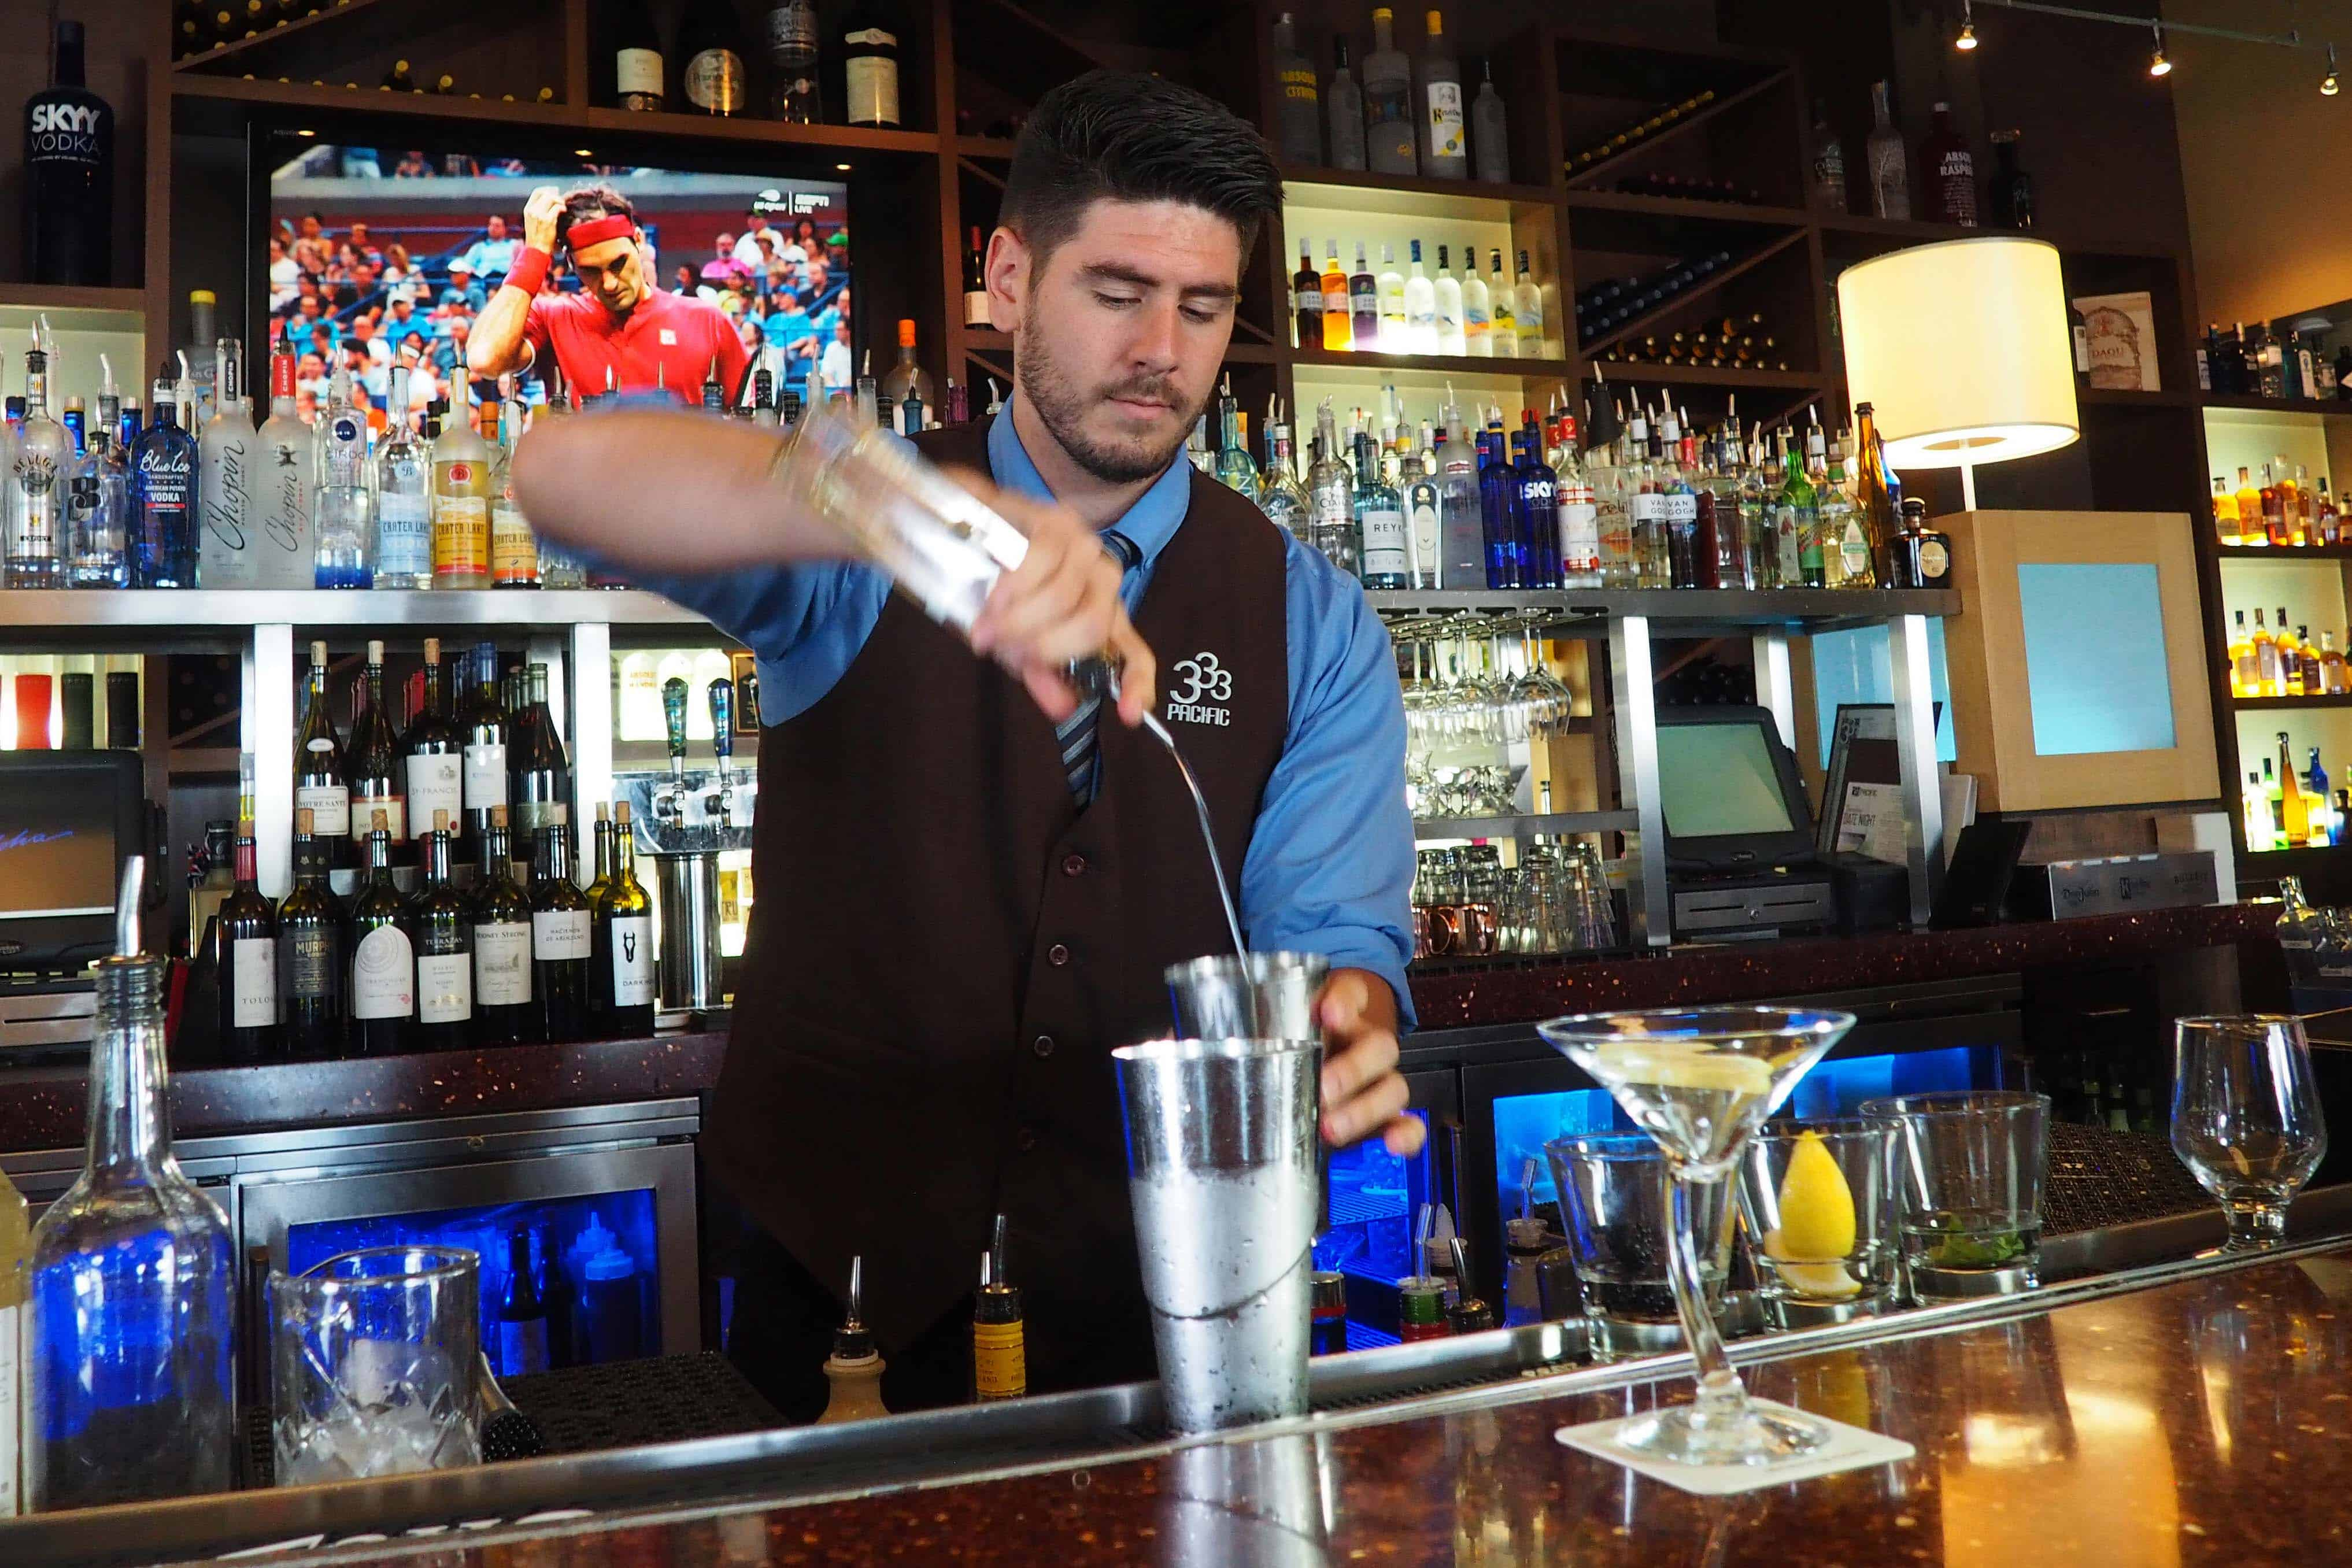 333 Pacific Lead Bartender Chandler Ervin Mixing a Cocktail